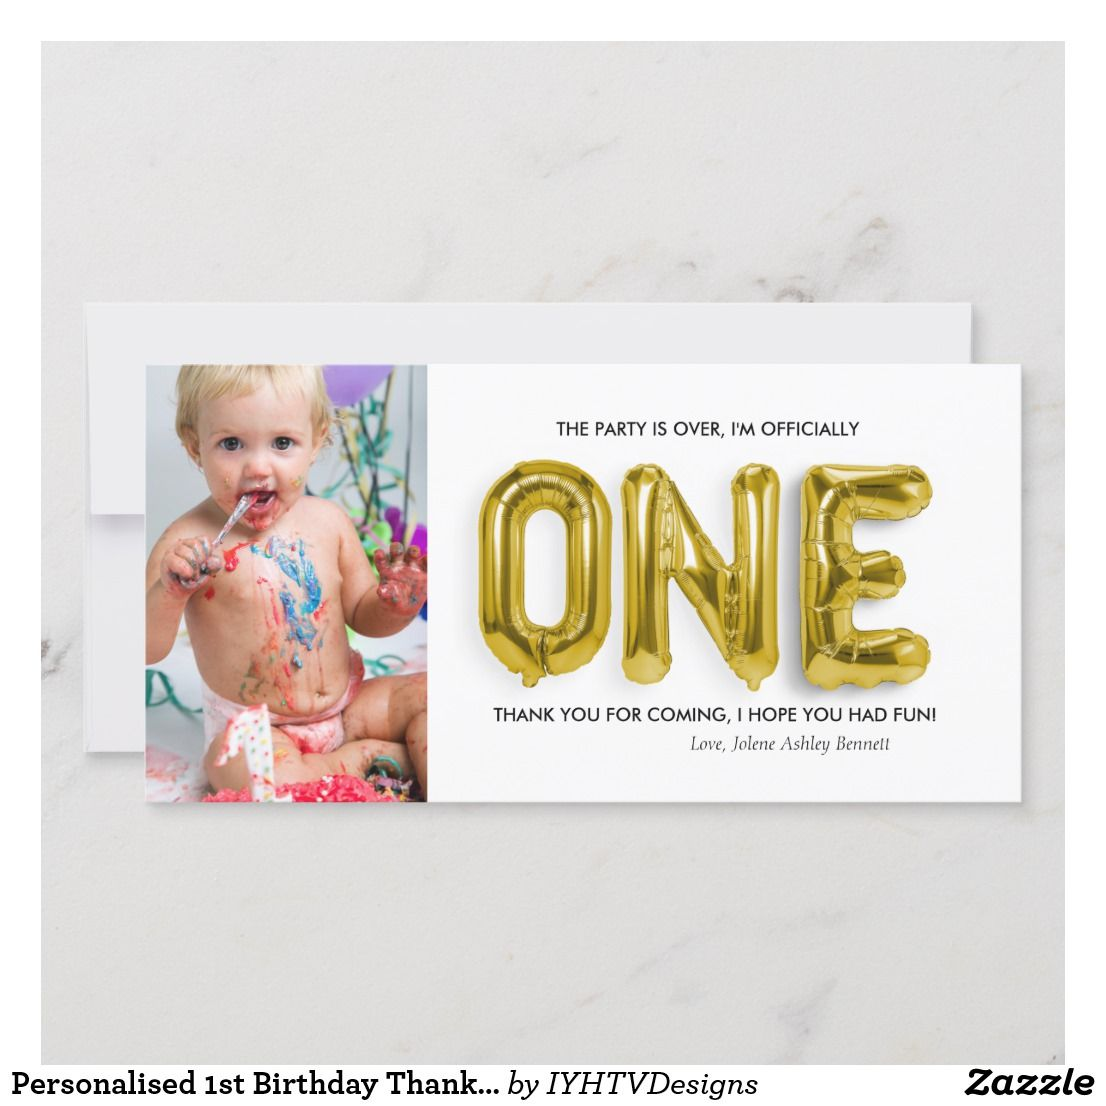 Personalised 1st Birthday Thank You Card Zazzle Com Birthday Thank You Cards Birthday Thank You Thank You Cards